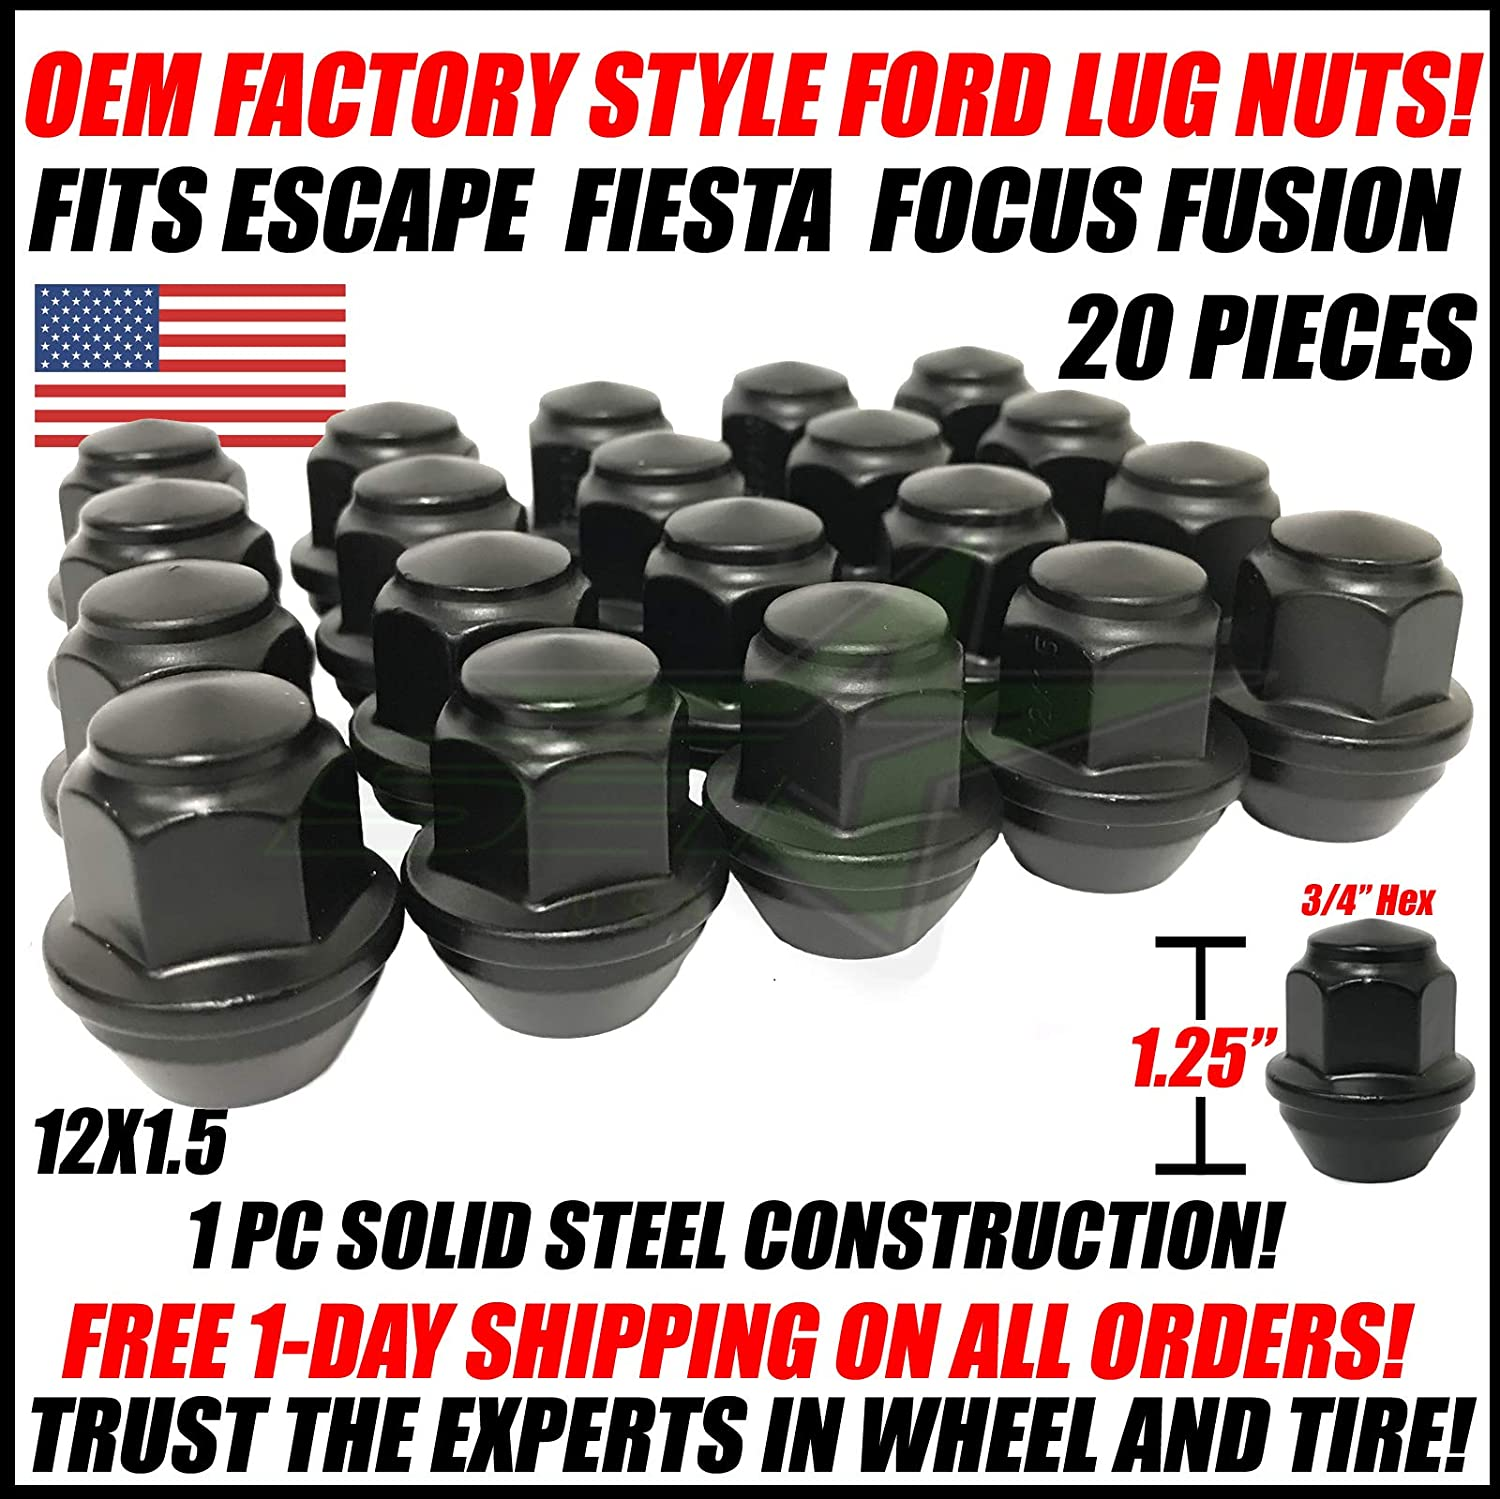 20x 12x1.5 Black OEM Factory Style Lug Nuts for Ford Fusion Focus Stock Wheels